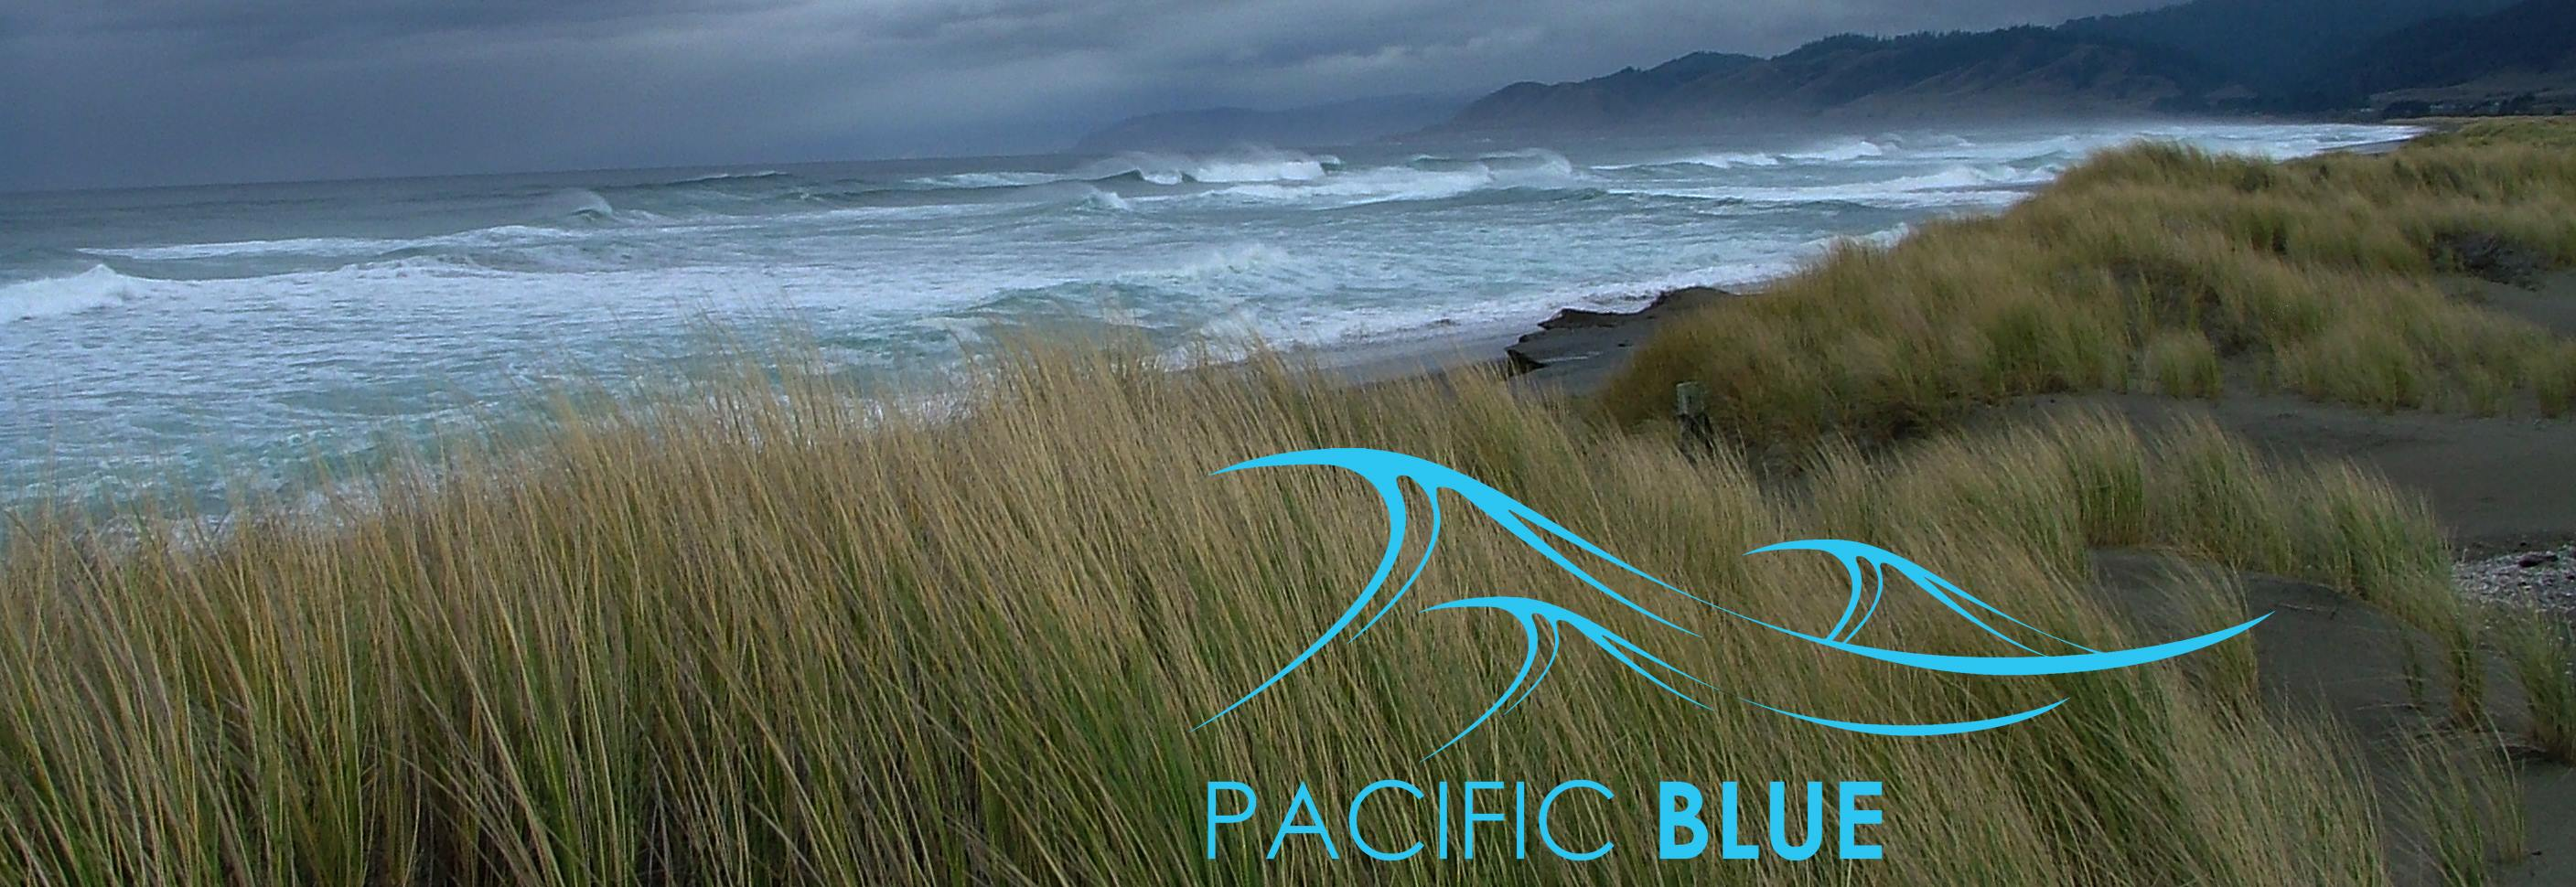 Pacific-Blue-Vacation-Rentals-Fort-Bragg